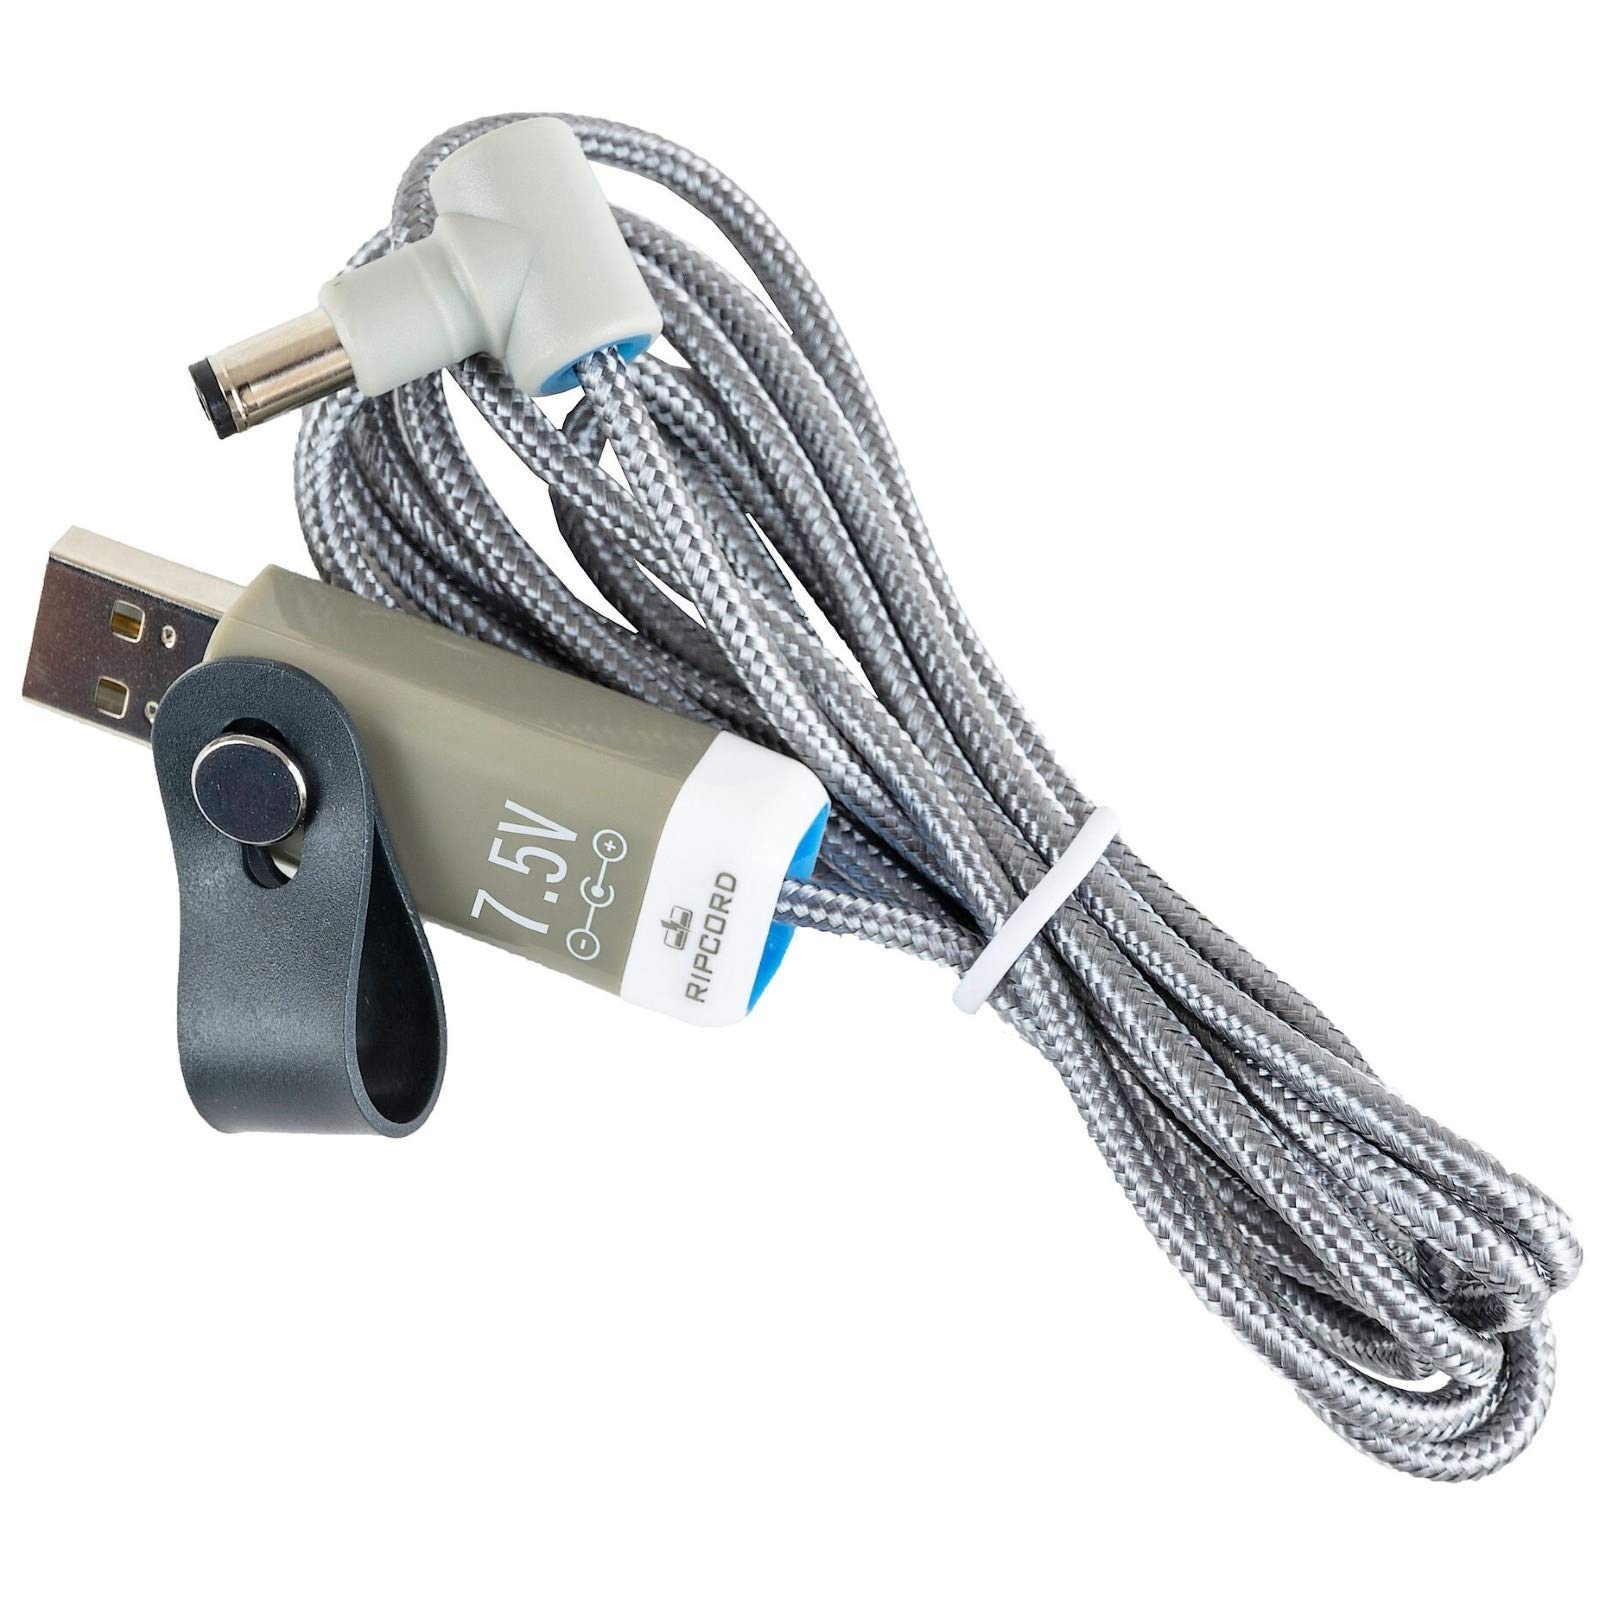 myVolts Ripcord - USB to 7.5V DC Power Cable Compatible with The Philips Avent SCD536 Baby Baby Unit DECT Monitor by MyVolts